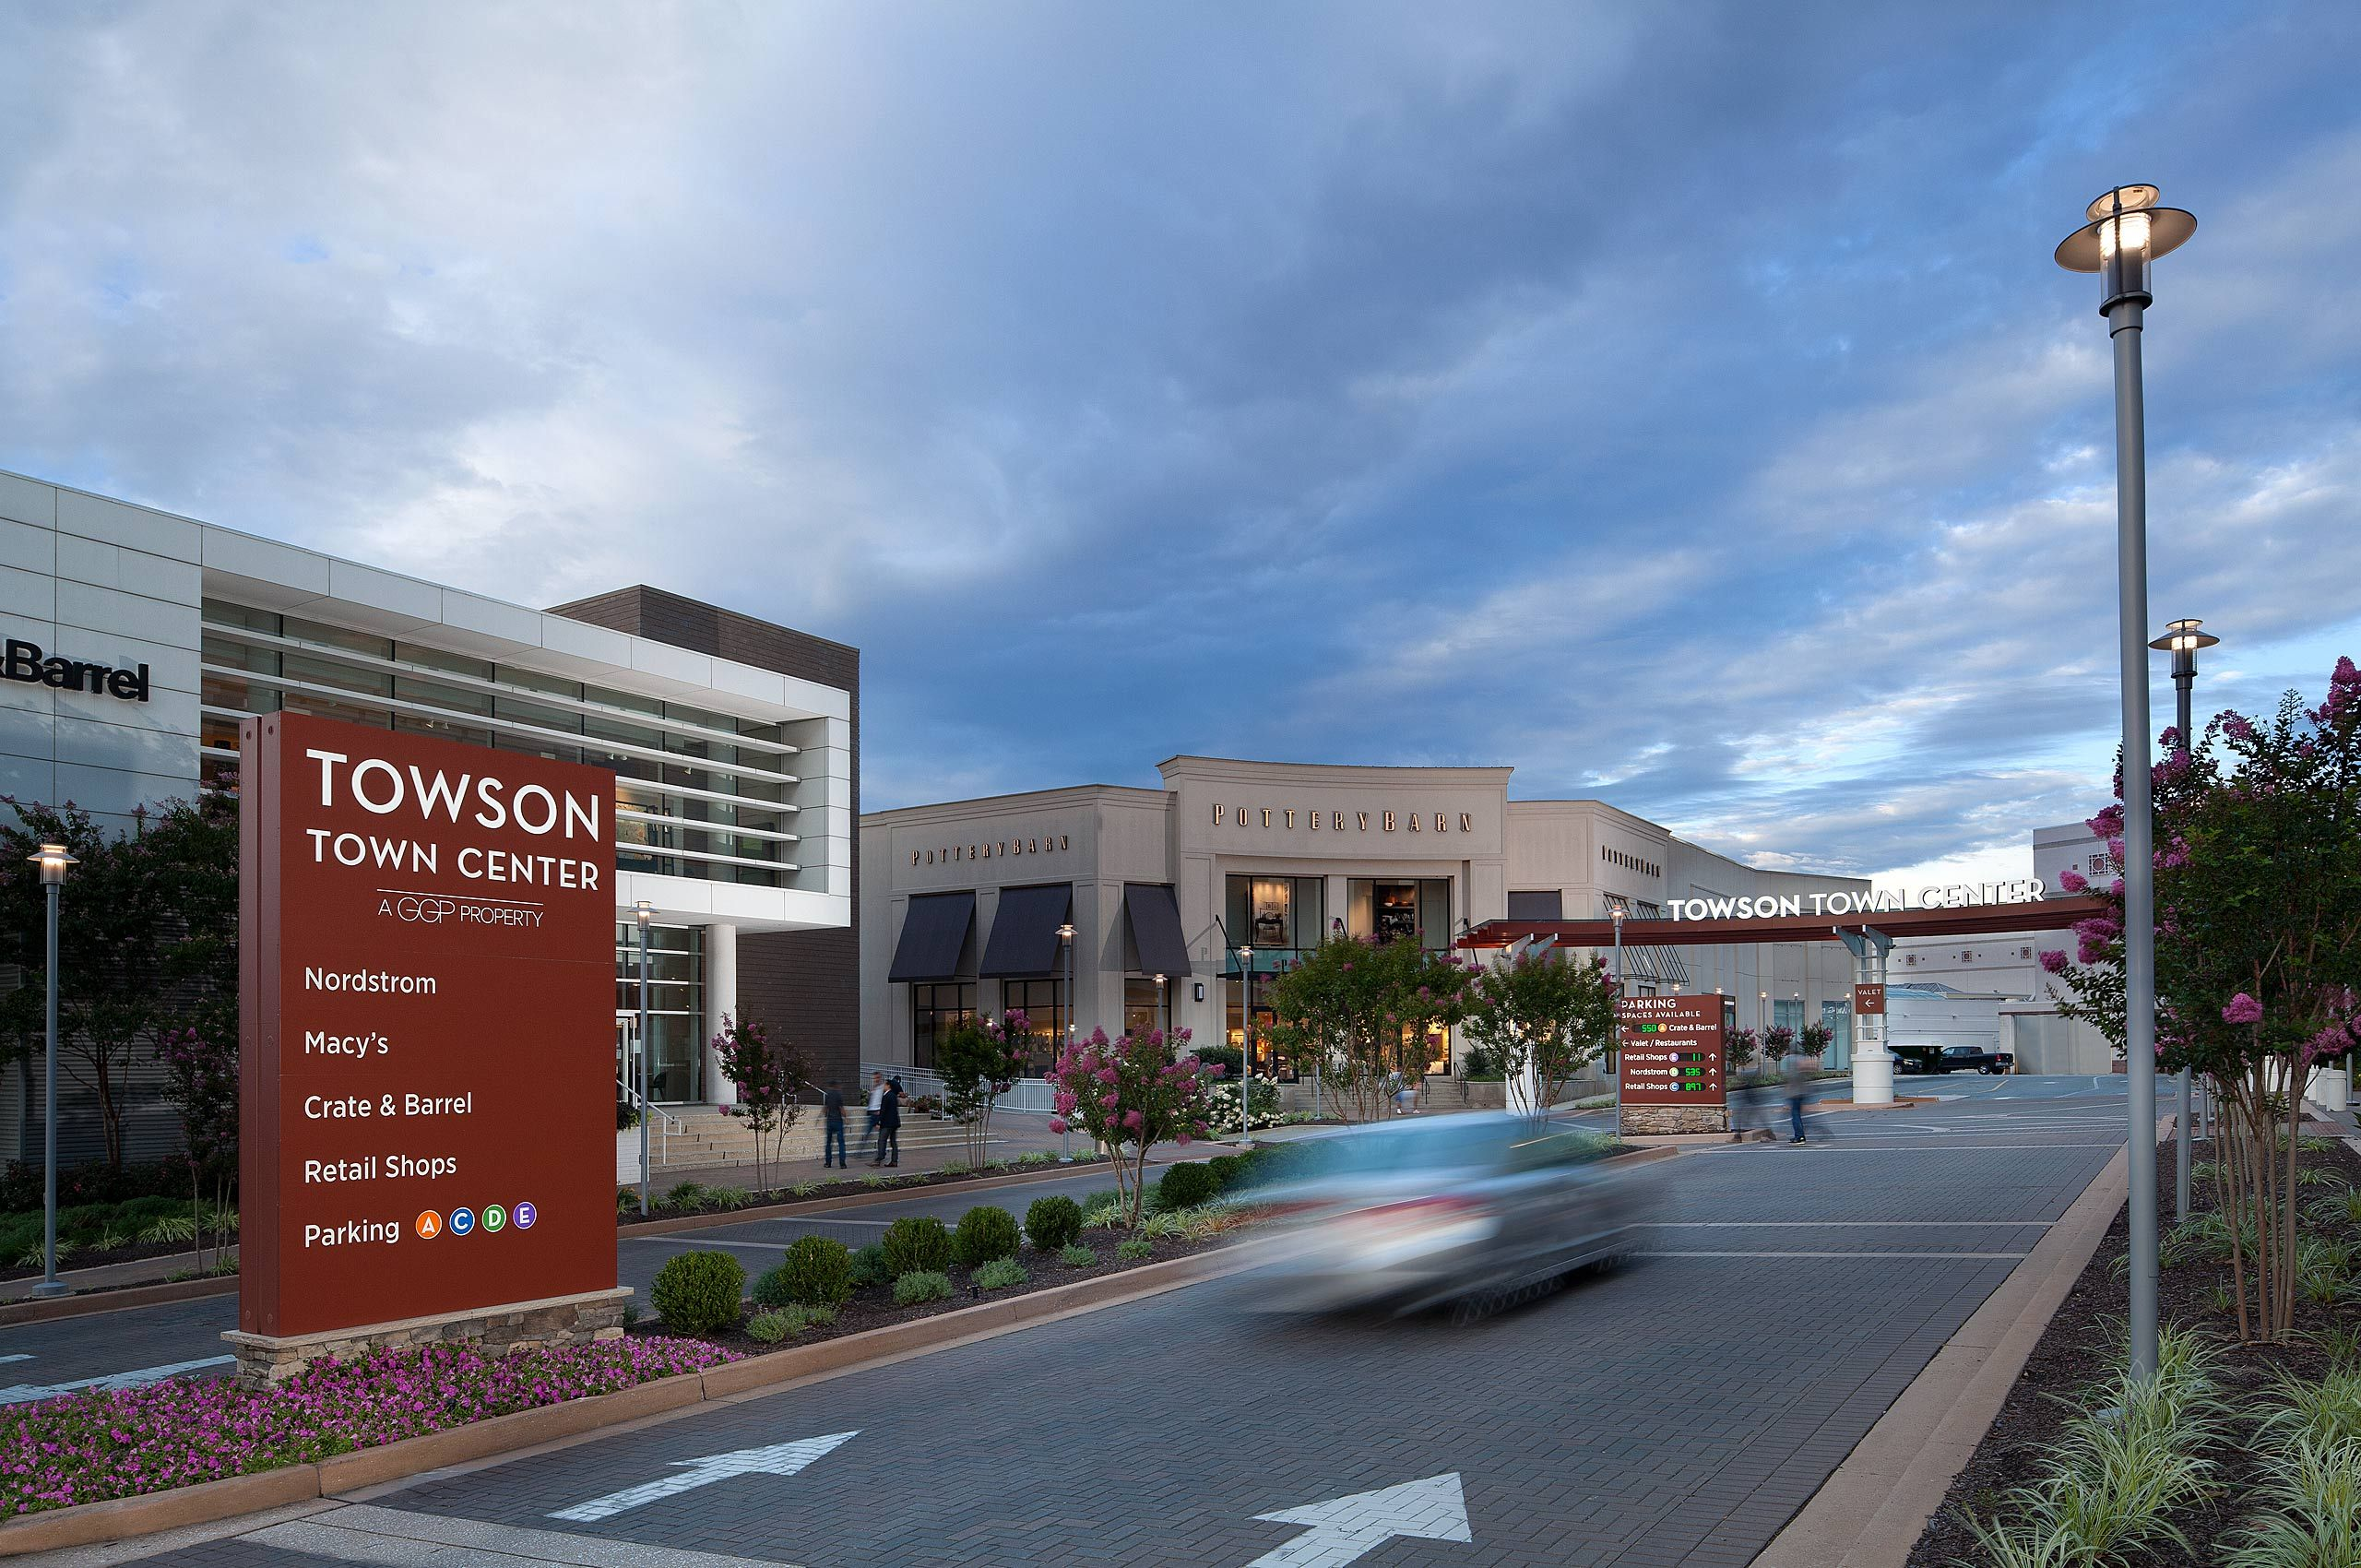 TowsonTowncenter.architecture2.jpg